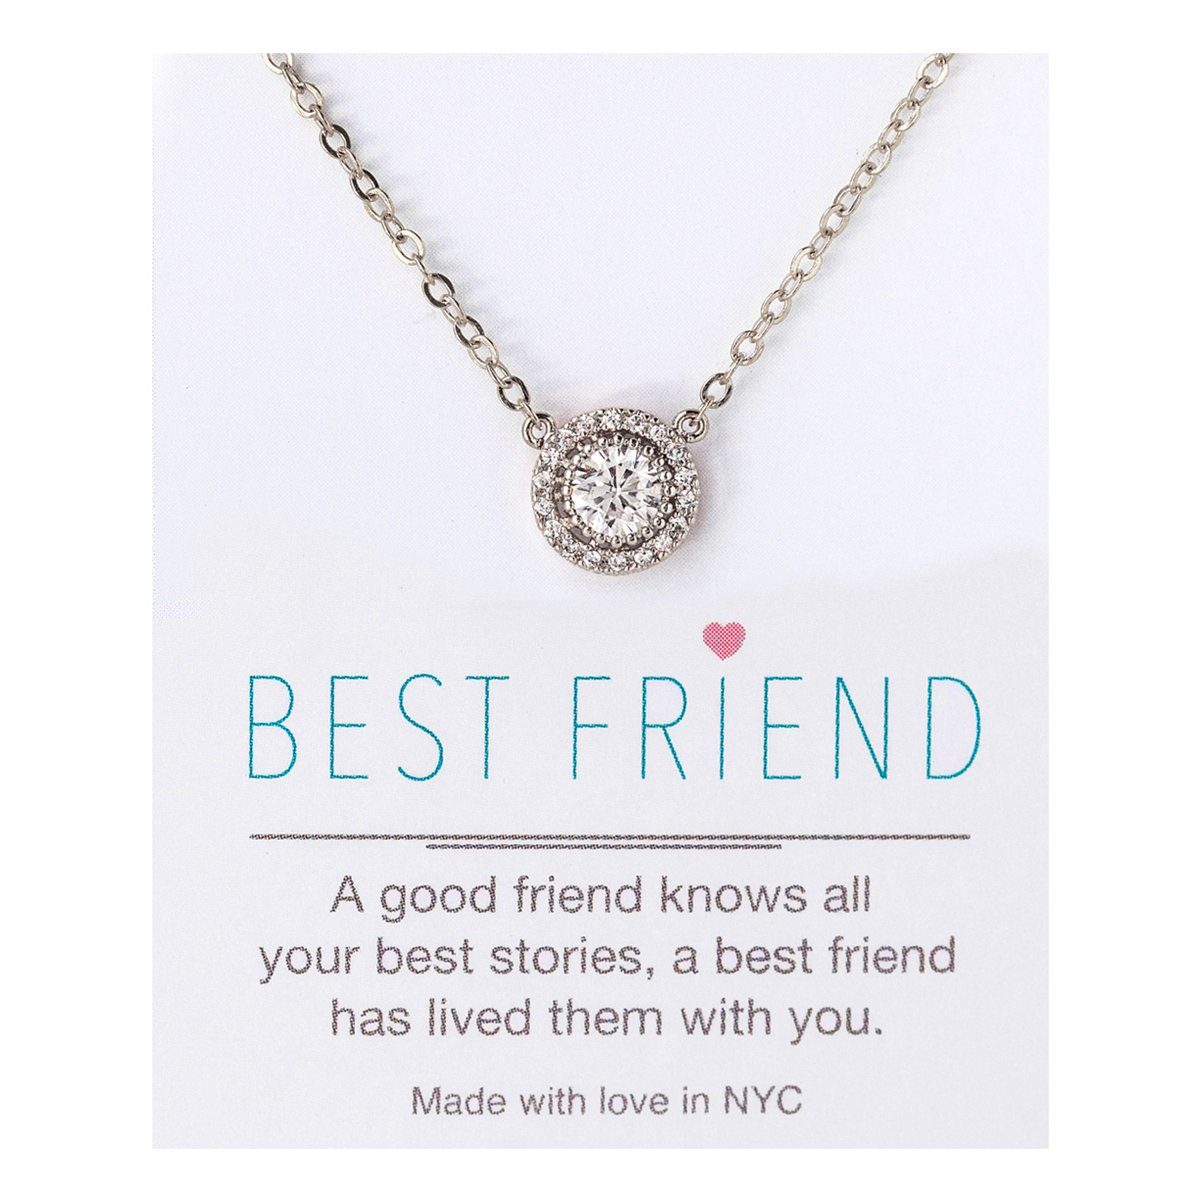 A+O Friendship Necklace - CZ Pave Necklace in Gold, Rose Gold, Sterling Silver